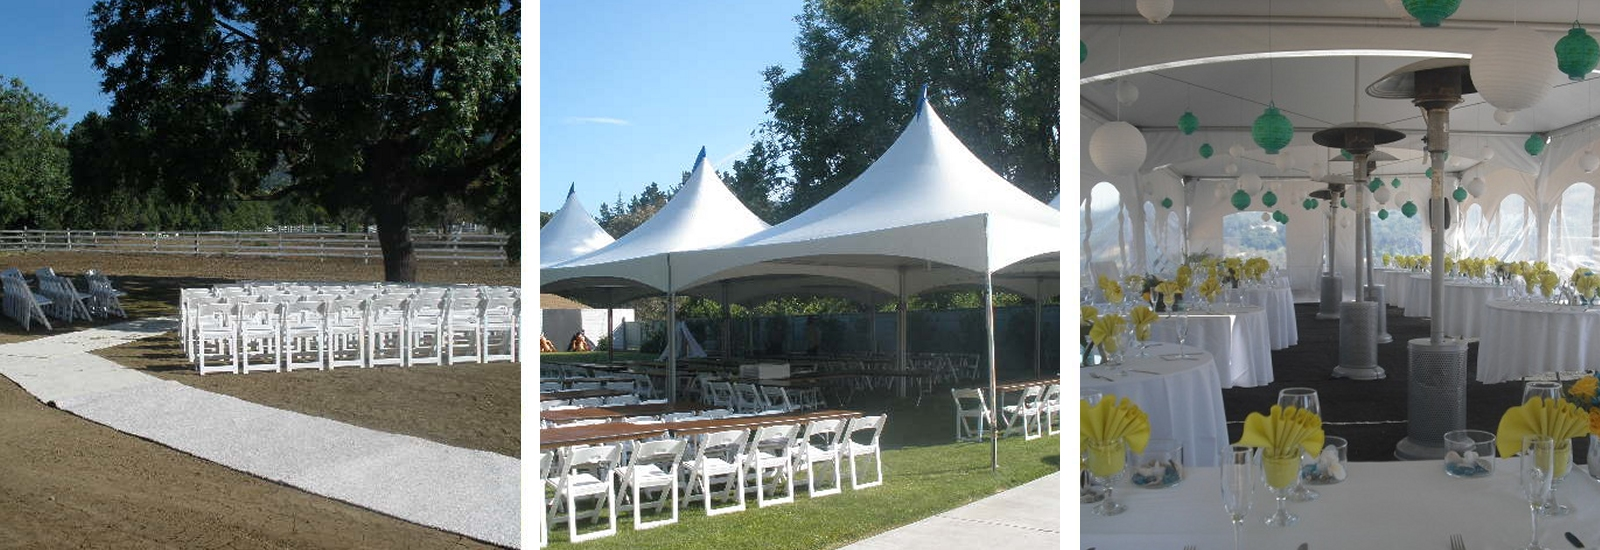 Party Rentals in Concord CA | Equipment Rentals in Pittsburg CA